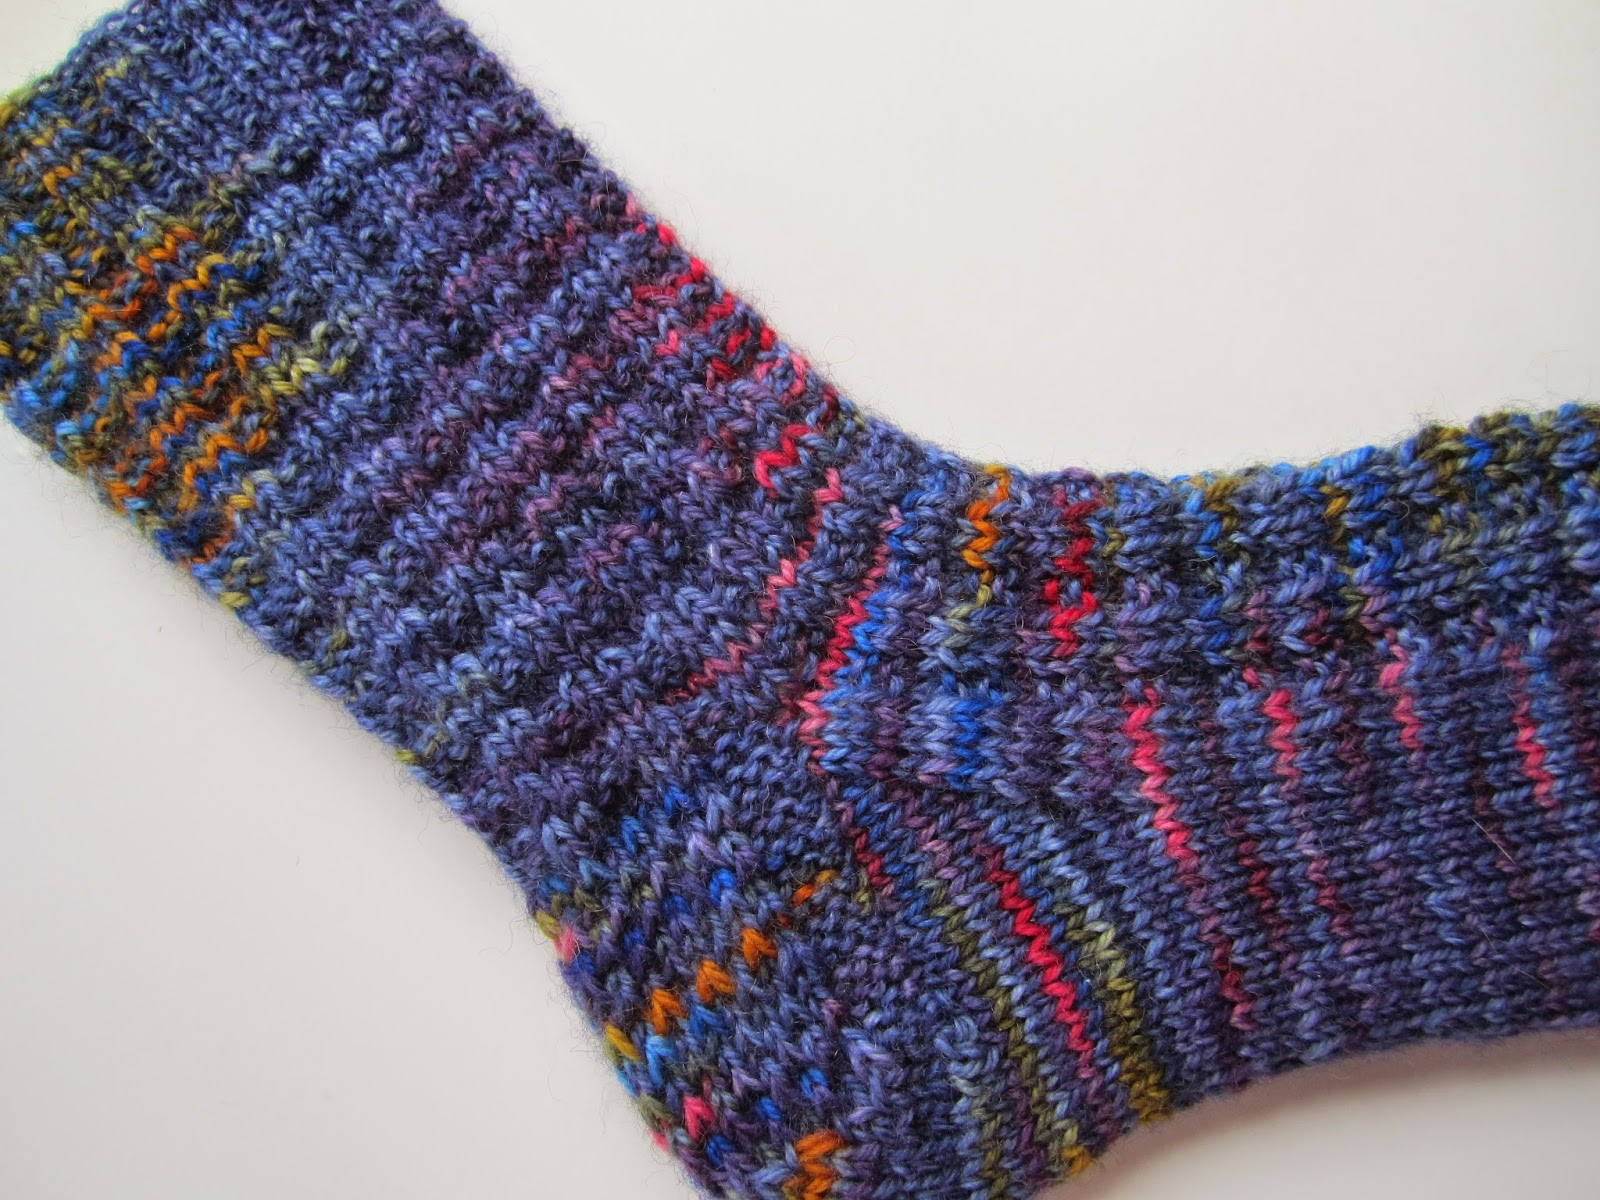 Down Cloverlaine: A Sampler of Socks